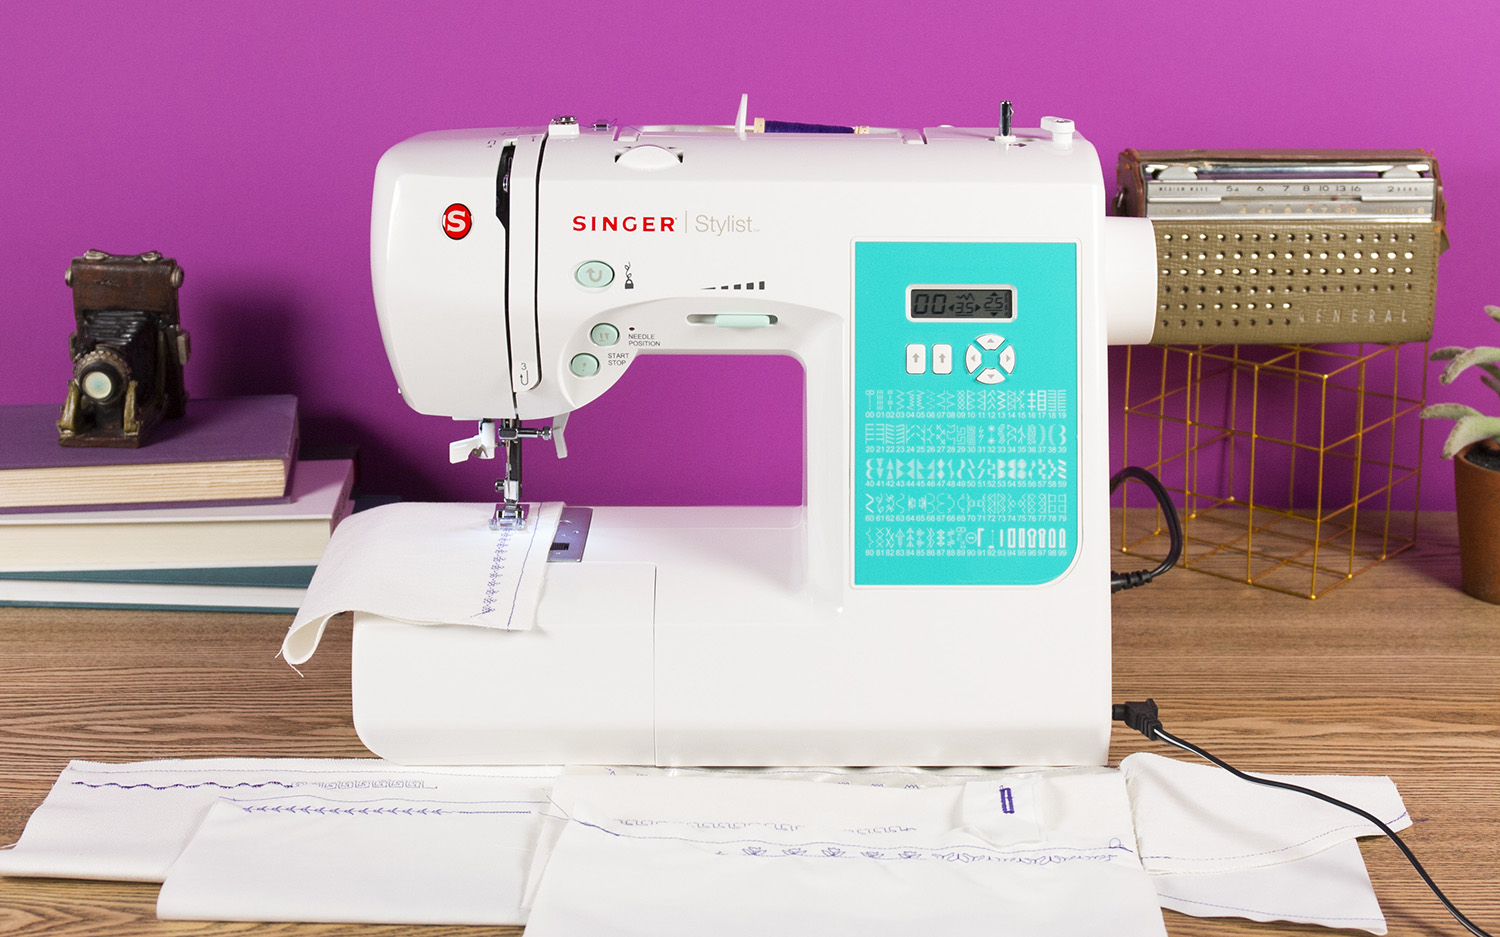 Cheap Sewing Machines Australia Best Sewing Machines 2019 Singer Vs Janome Vs Brother Vs Juki